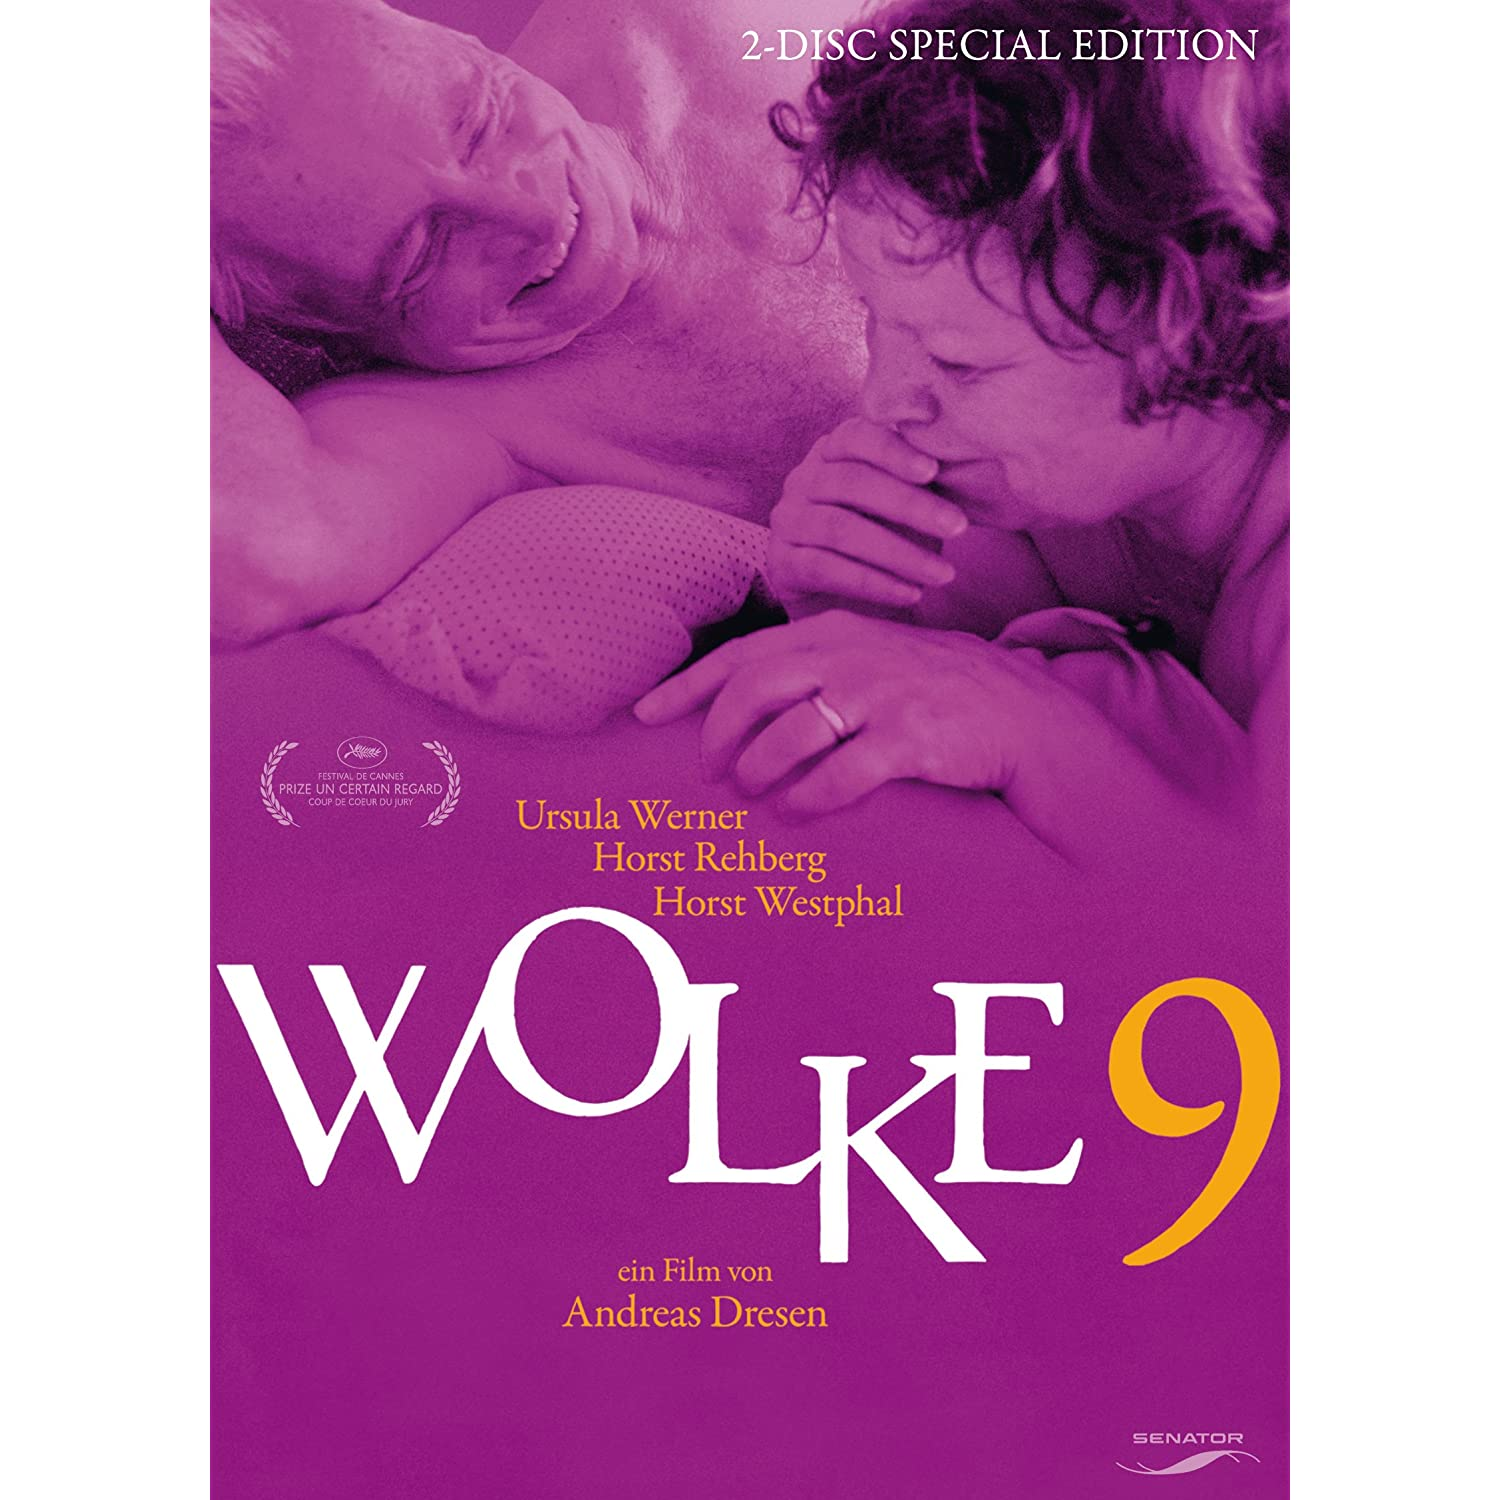 Wolke 9 [Special Edition], ca. 11 Euro